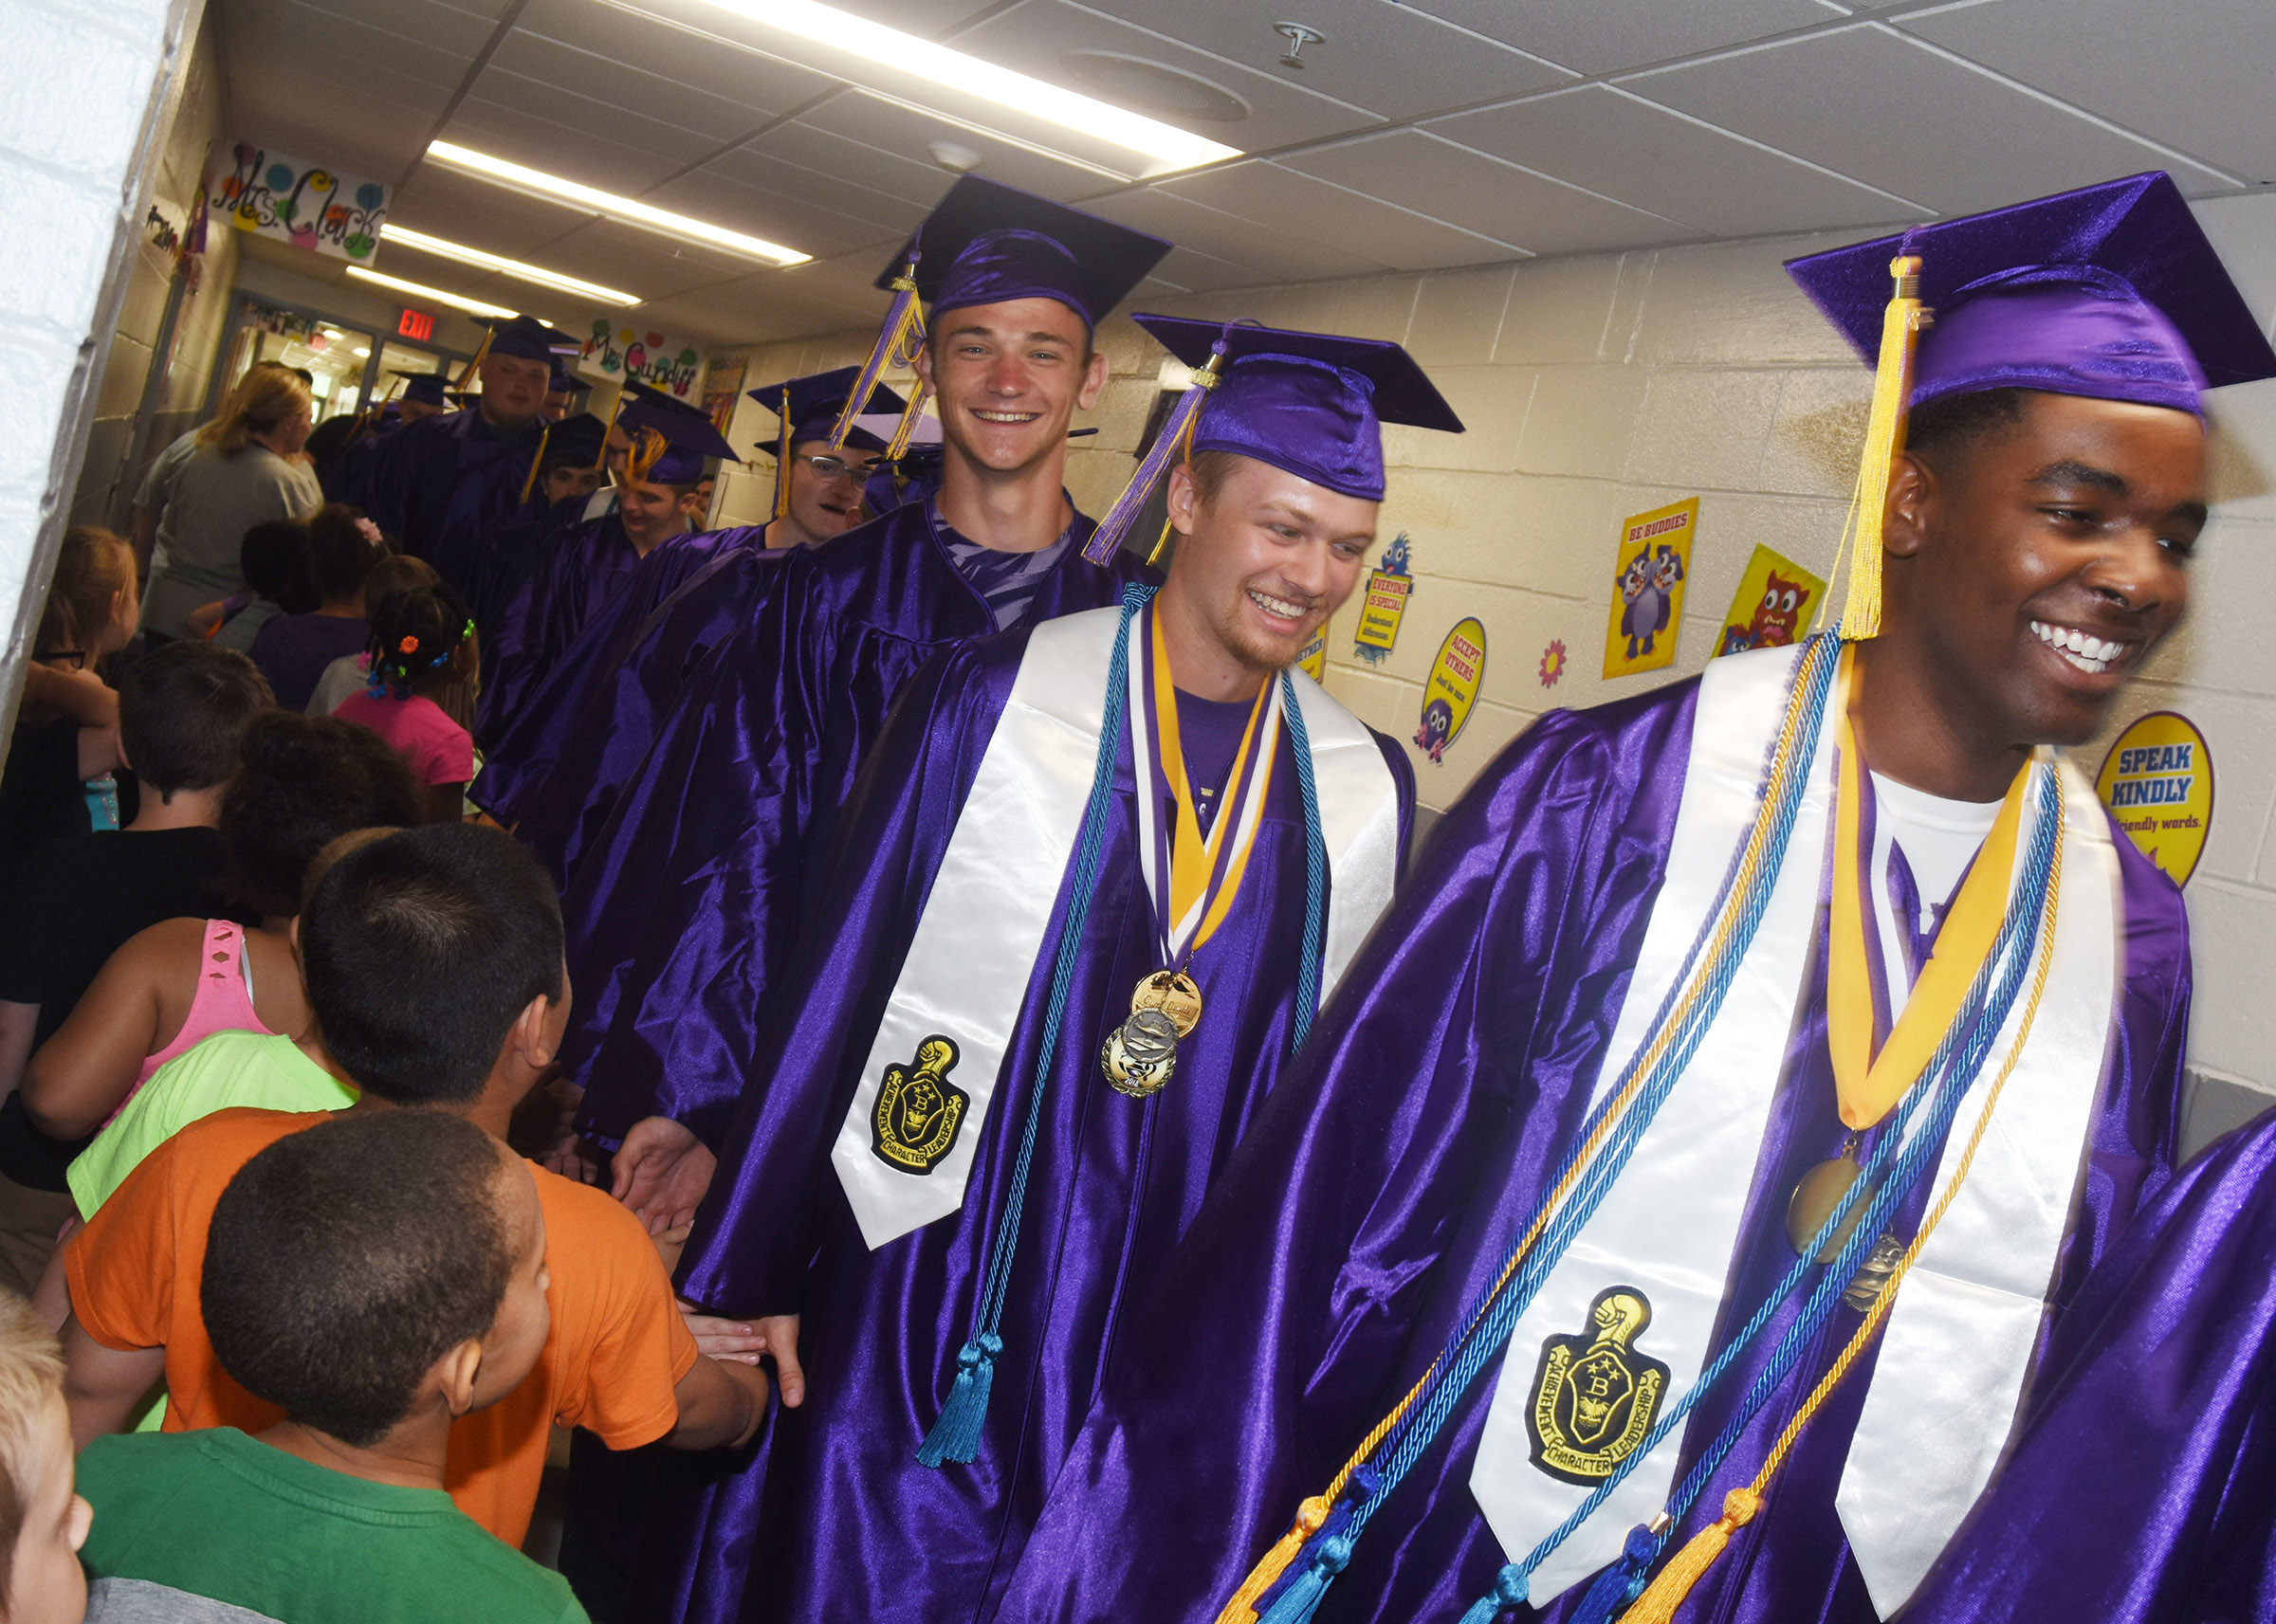 From left, Connor Wilson, Wyatt Houk and Chanson Atkinson participate in the Senior Walk at CES.